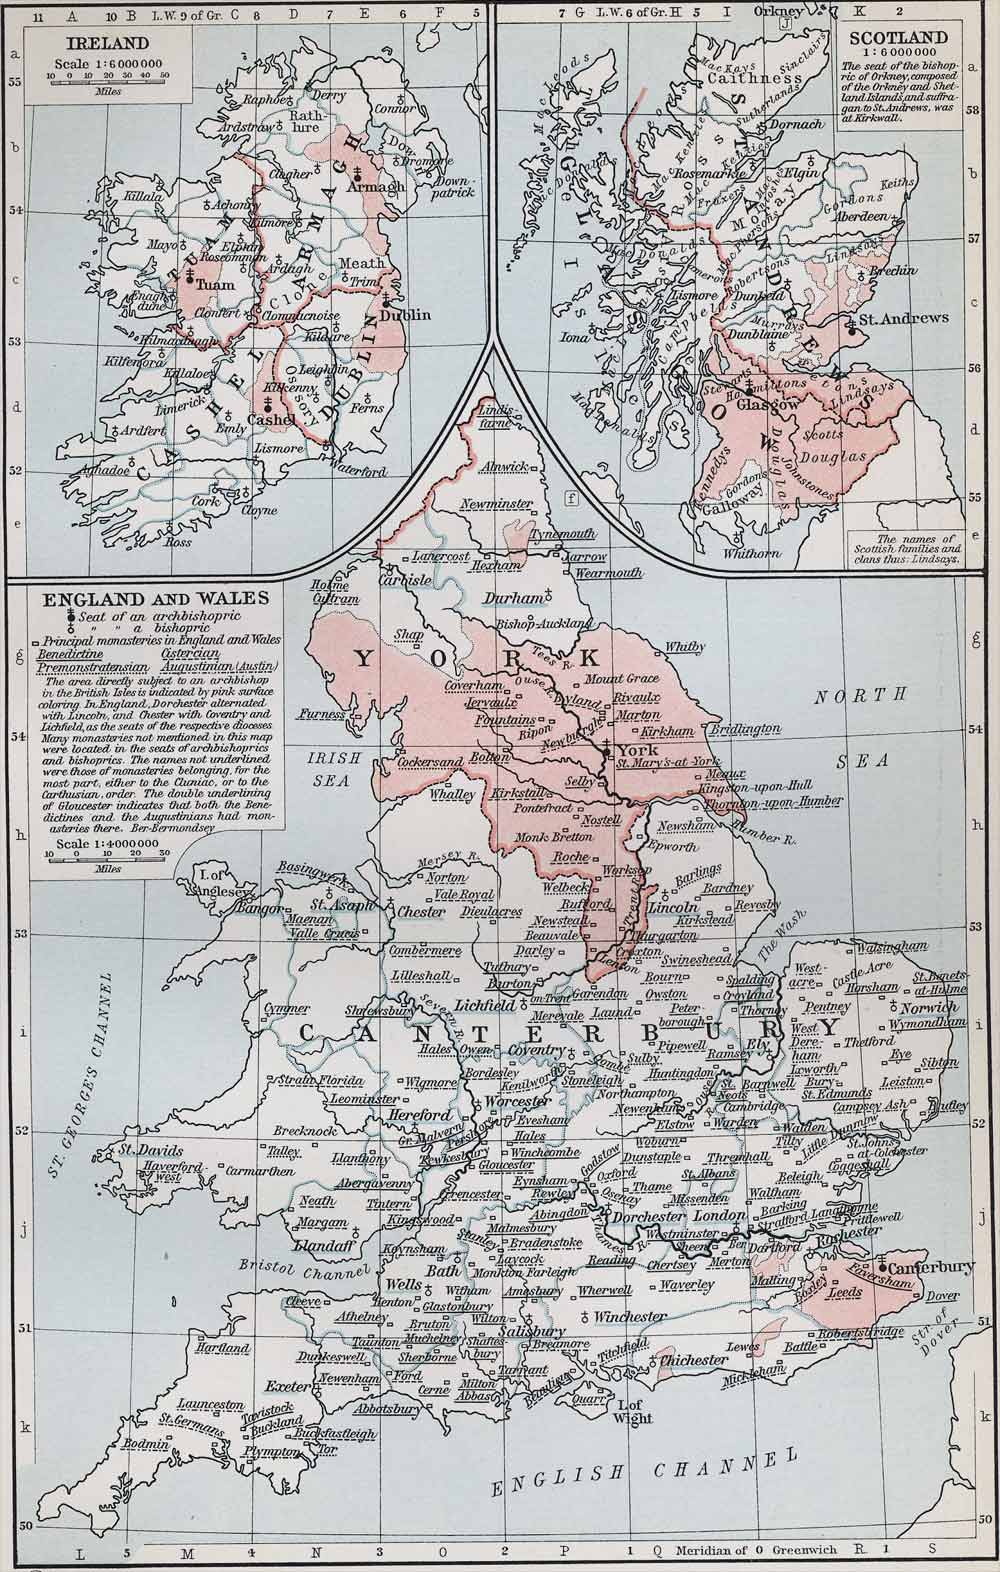 Ecclesiastical Map of the British Isles in the Middle Ages